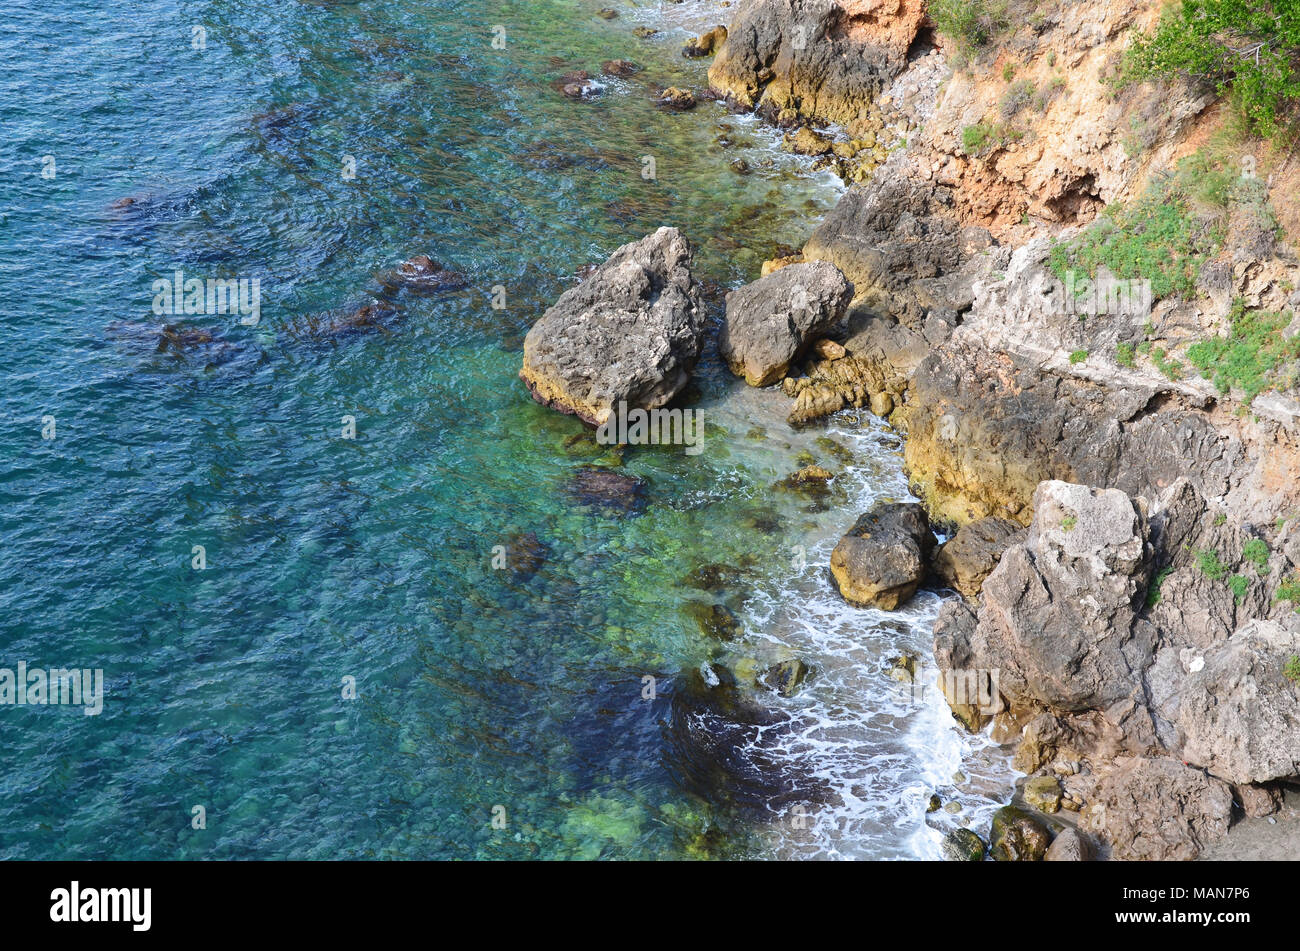 Sea Coast RockHigh Angle View Of Rock Formations In Sea. Background. - Stock Image